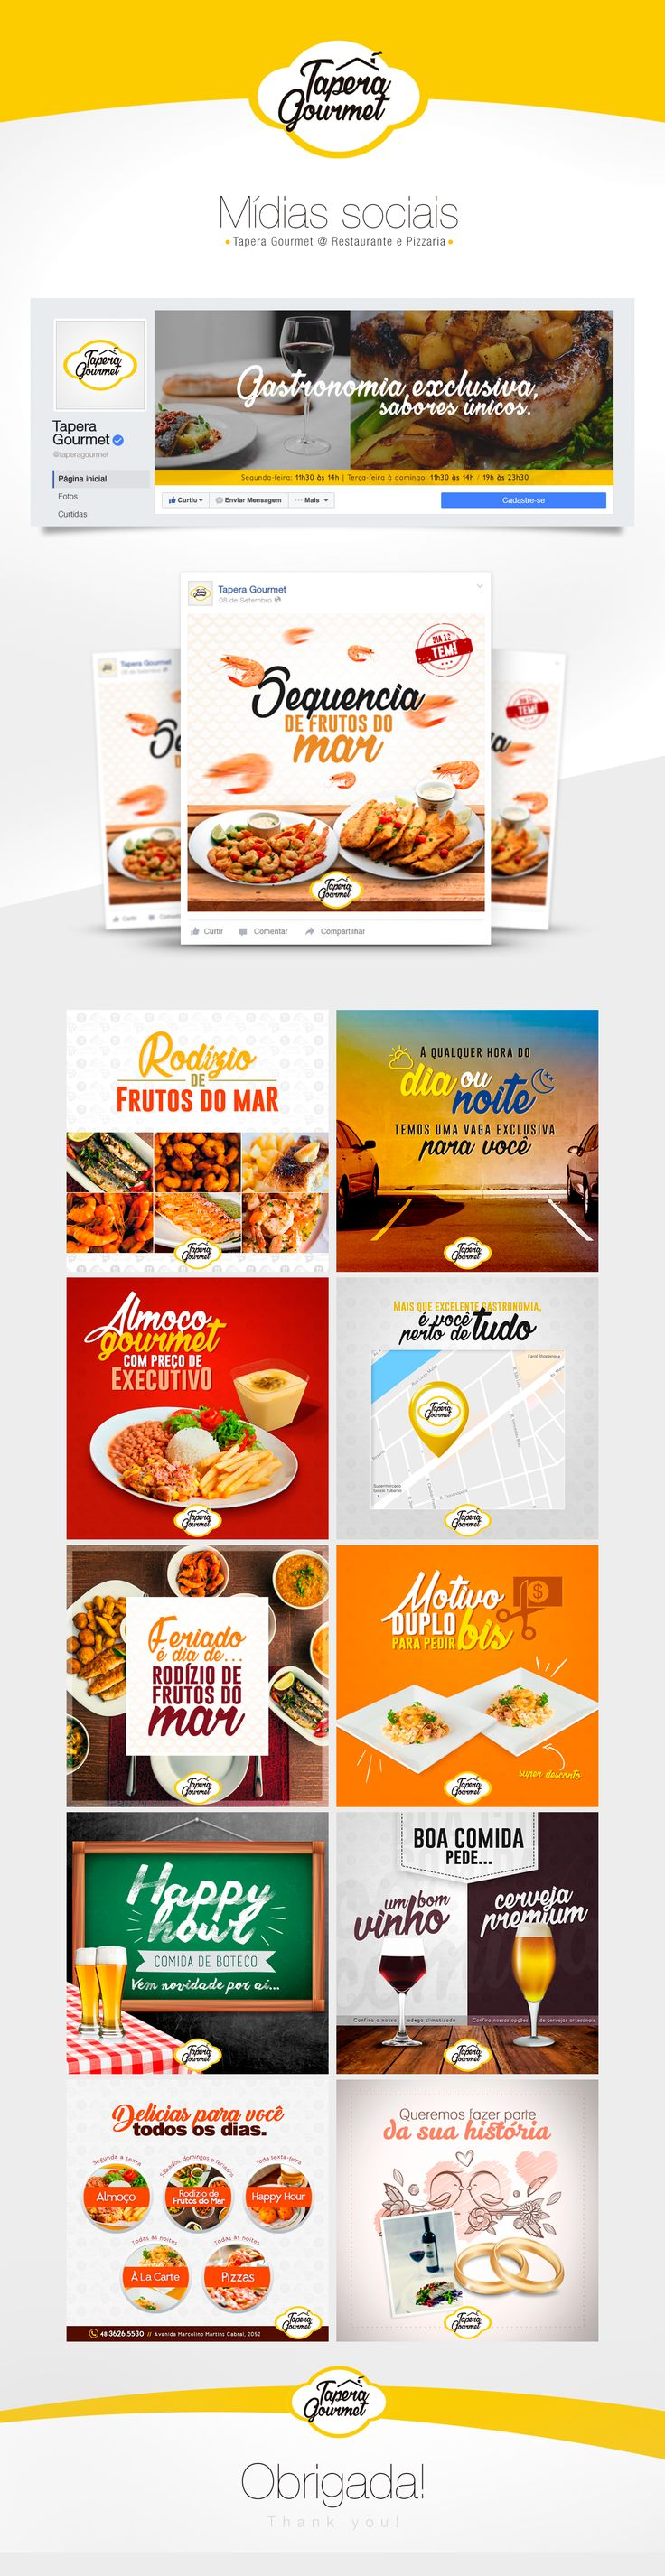 Tapera Gourmet @ Mídias sociais on Behance - Love a good success story? Learn how I went from zero to 1 million in sales in 5 months with an e-commerce store